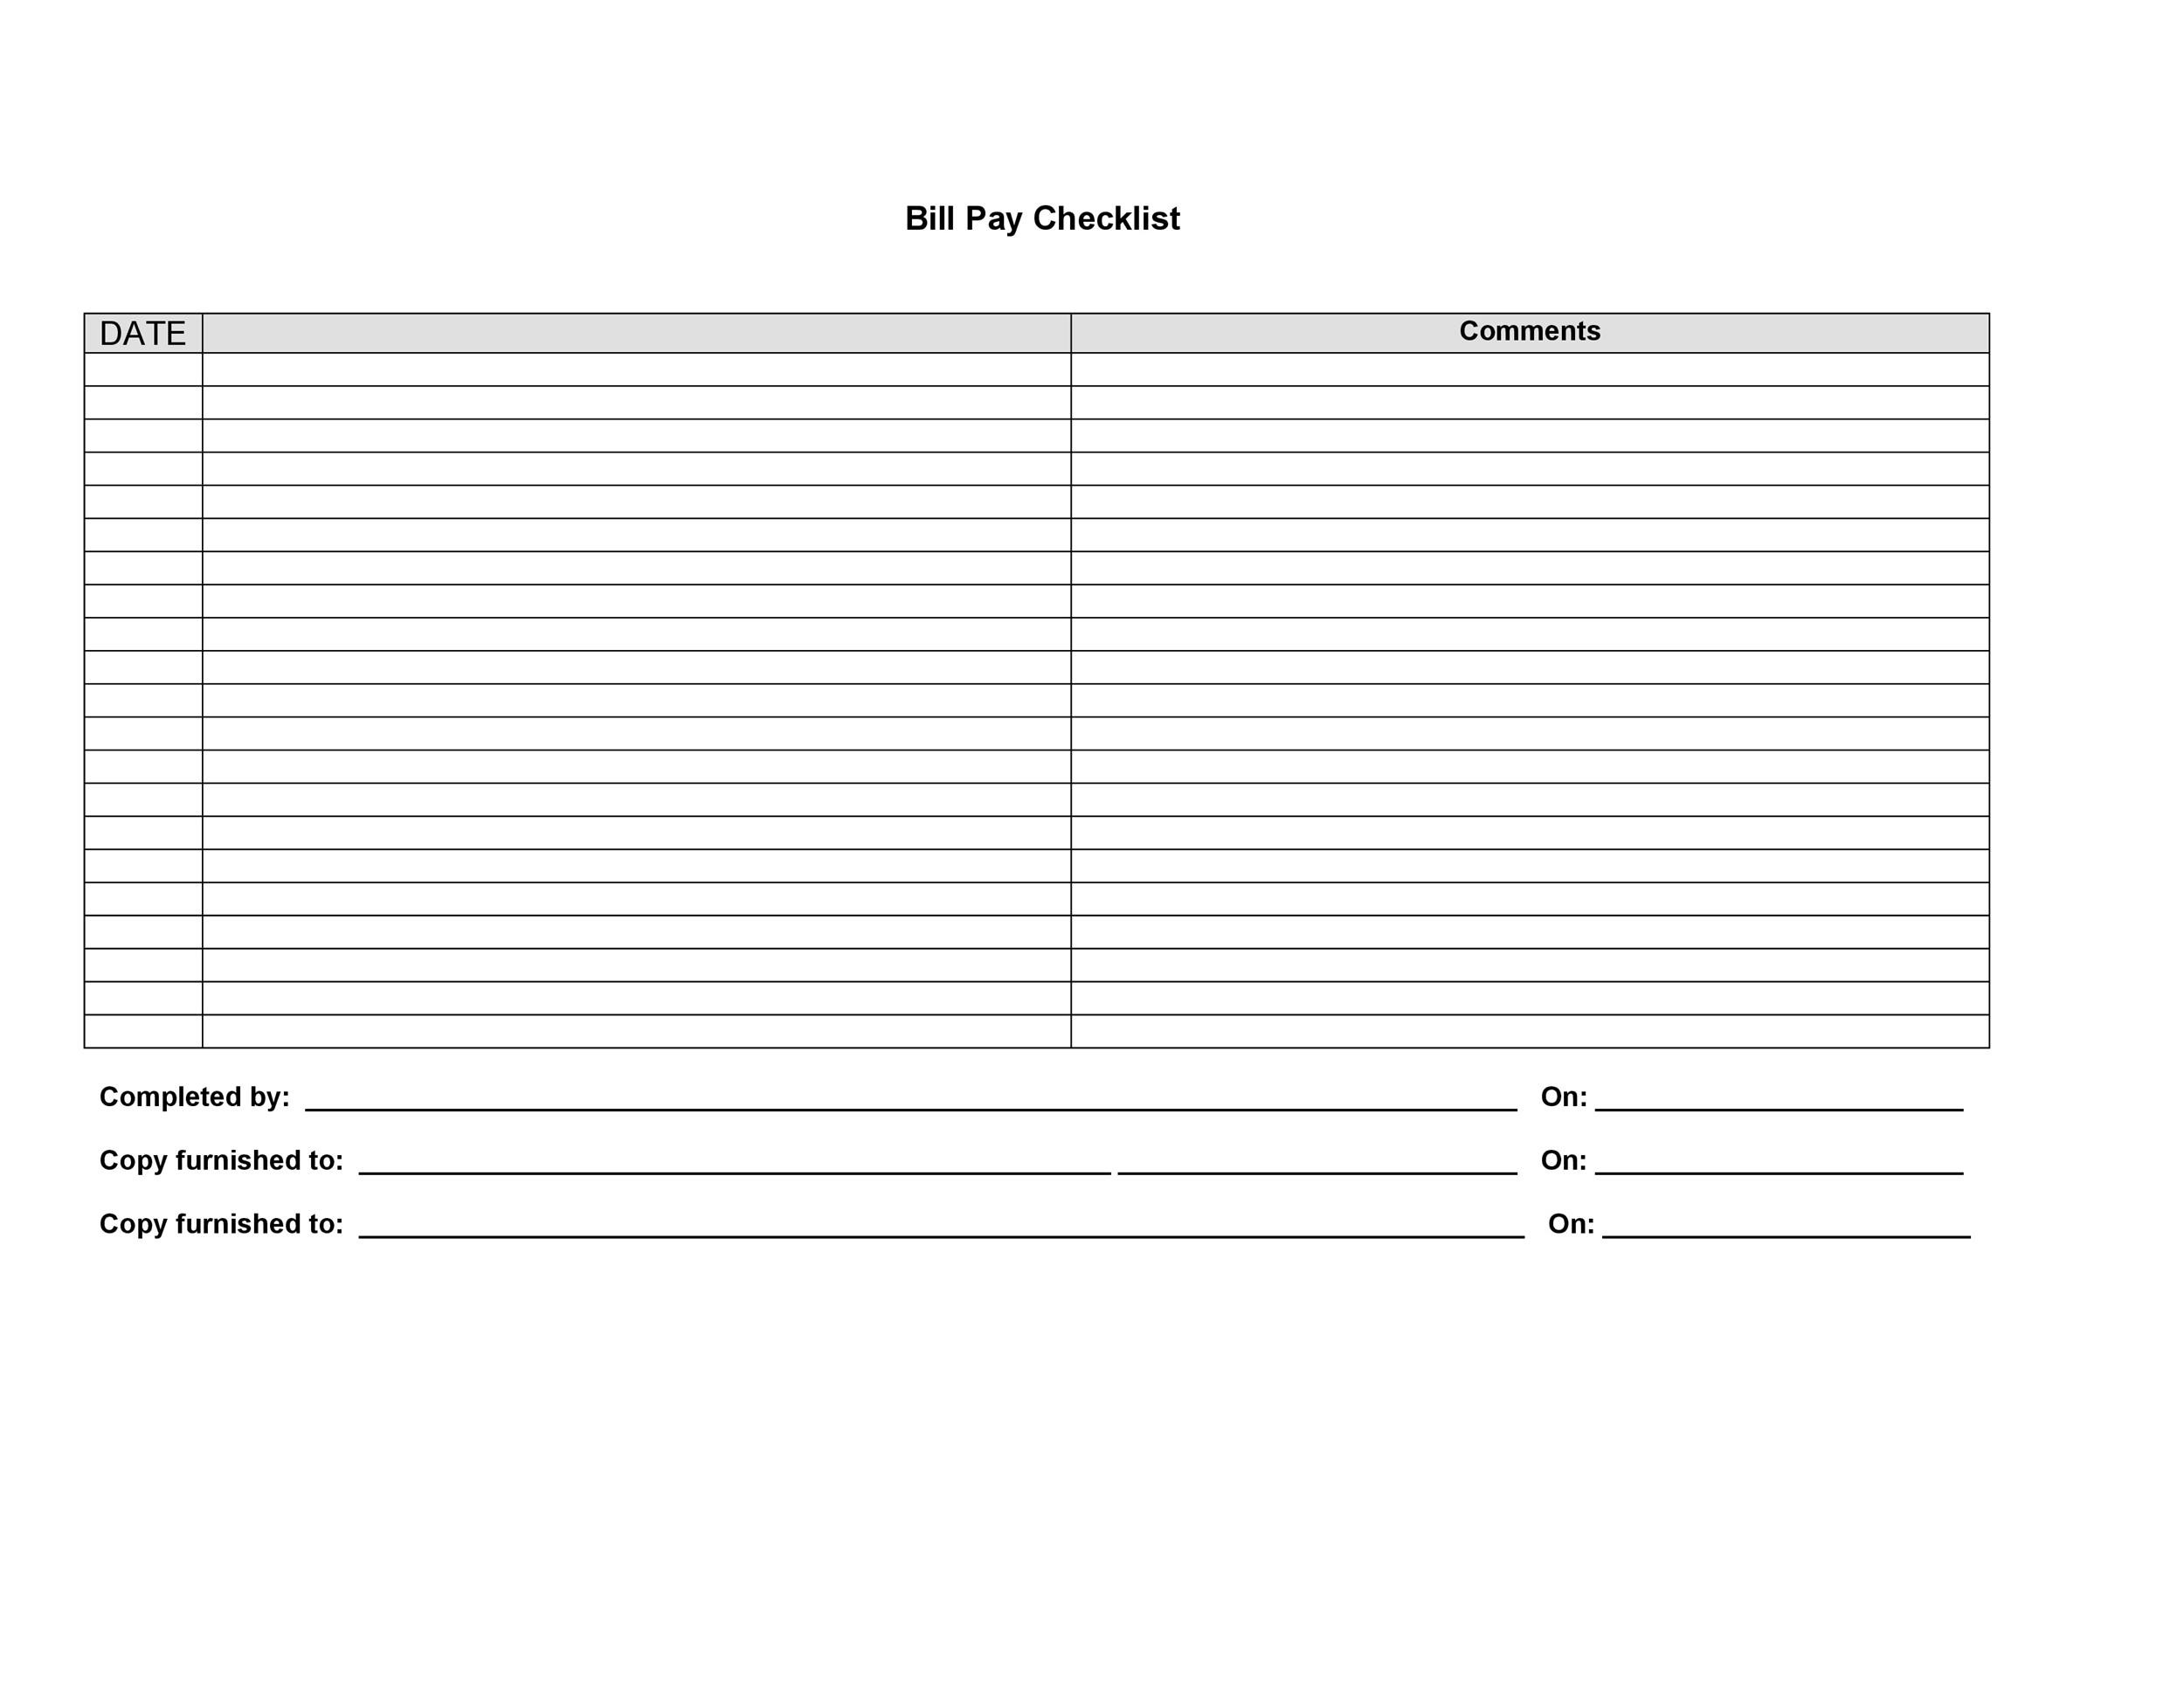 Free bill pay checklist template 15